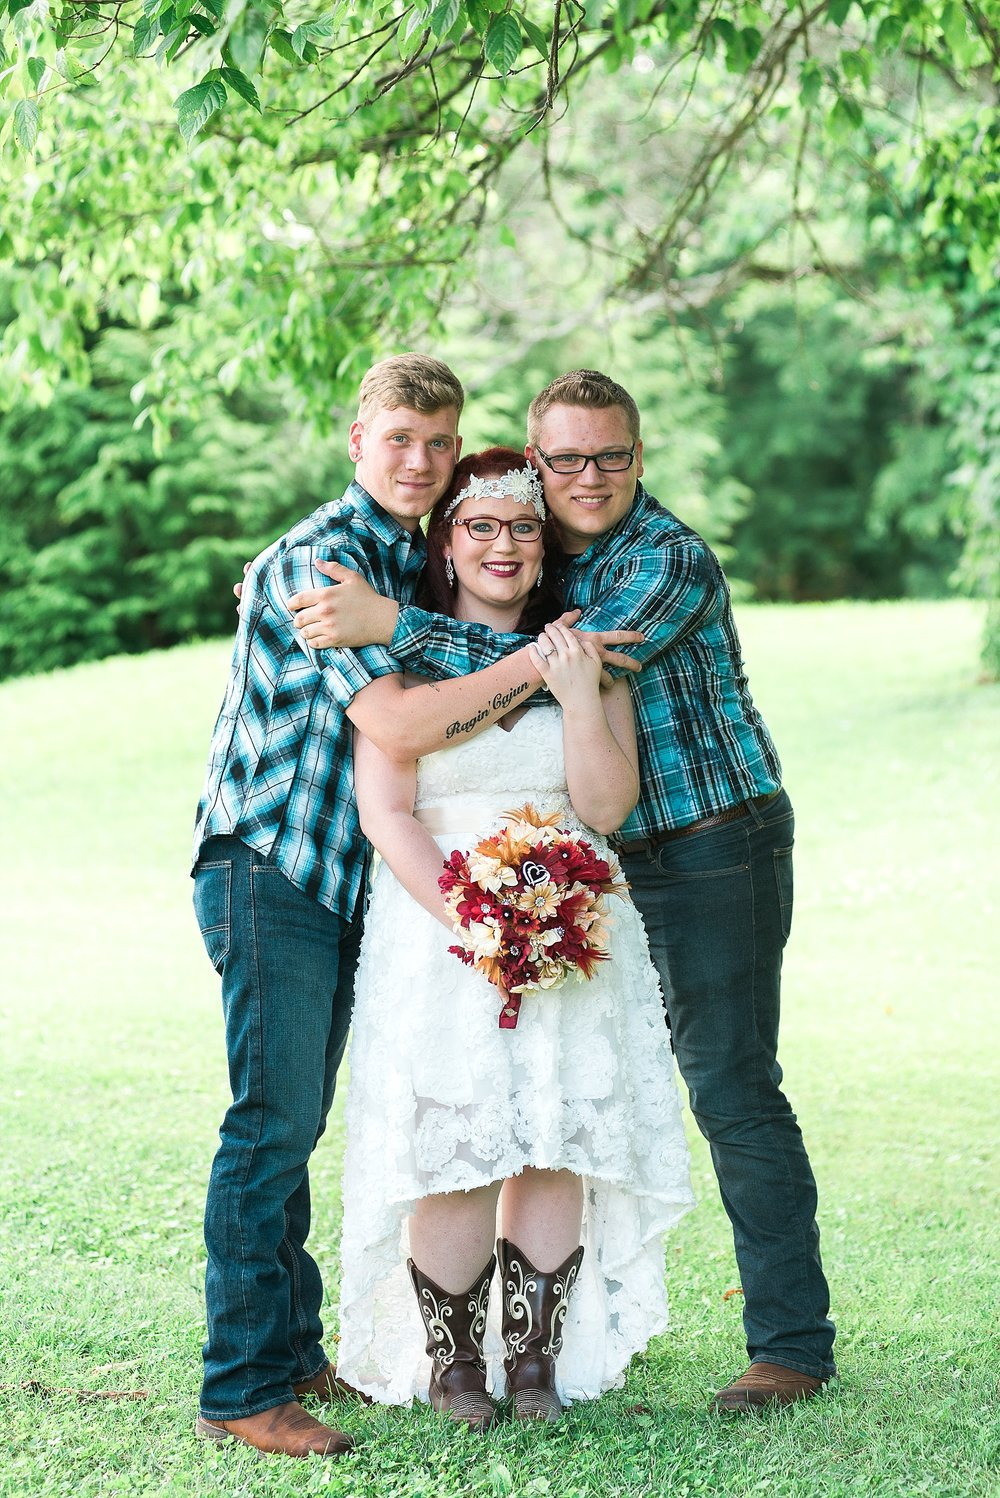 The bride and her brothers